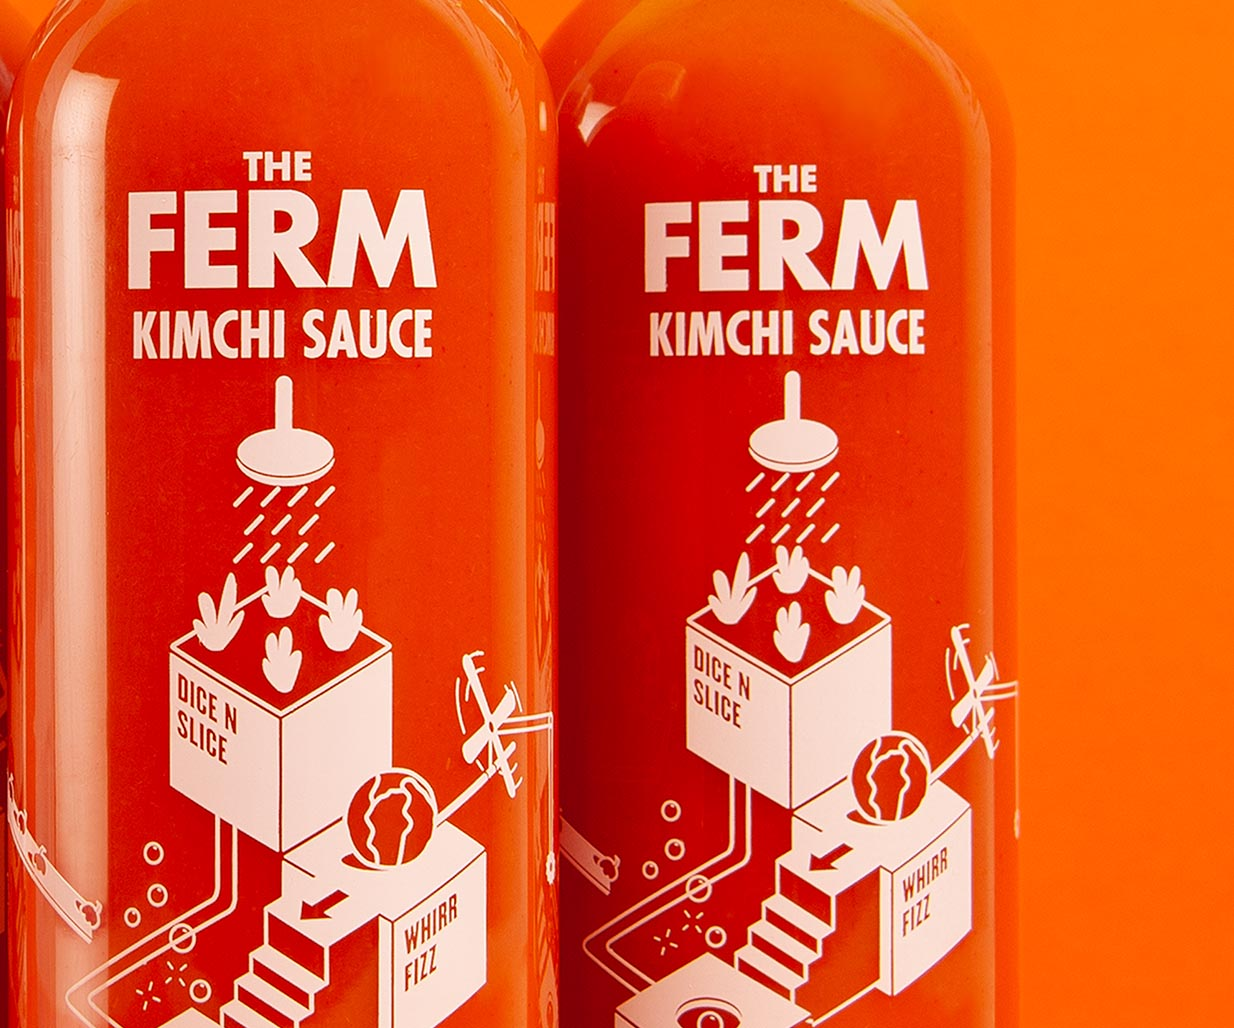 Brand Positioning, Brand Naming, Branding & Packaging Design project for FMCG food product manufacturer The Ferm, Sydney, Australia, image G